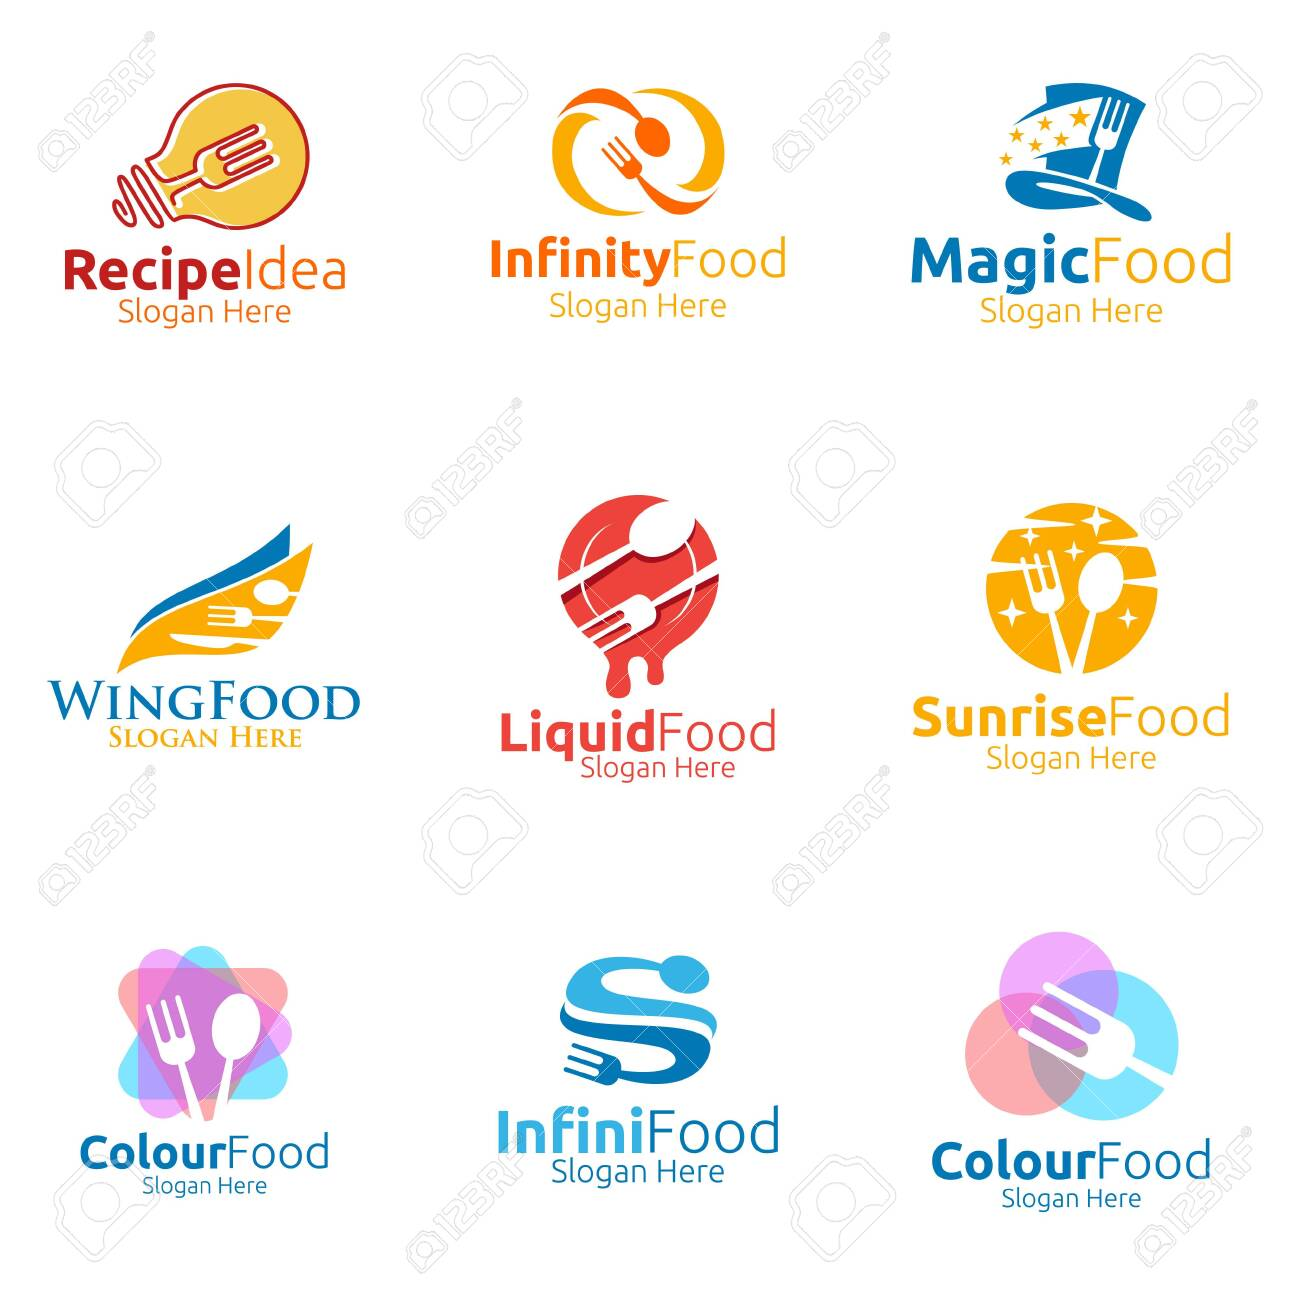 Healthy Food Logo Template Organic Vector Design For Menu Restaurant Royalty Free Cliparts Vectors And Stock Illustration Image 140027470